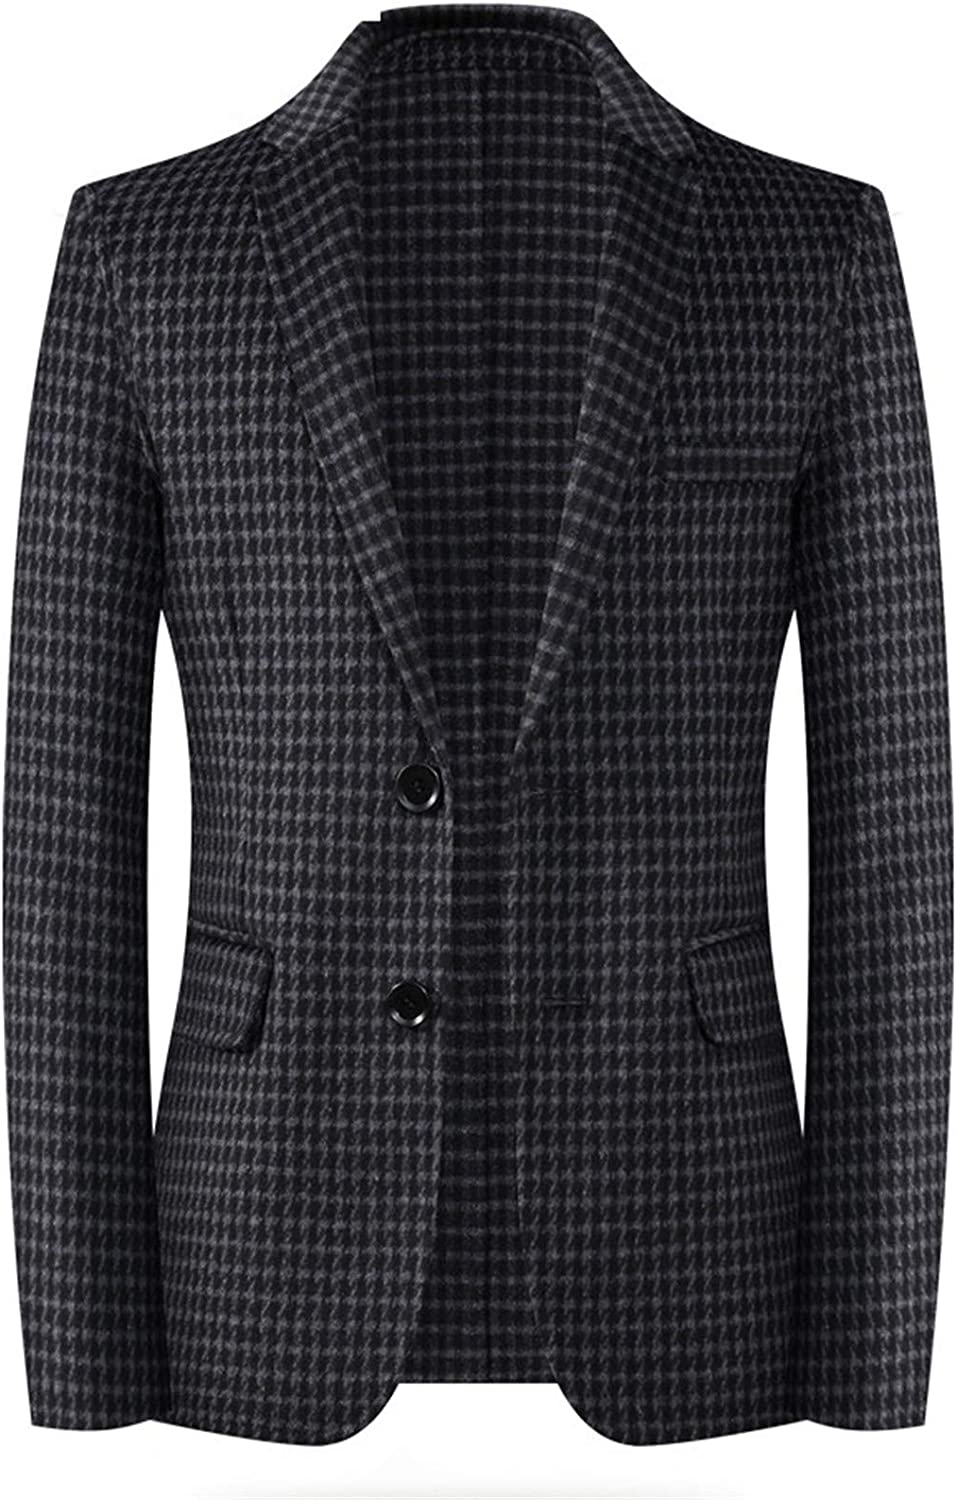 Men's Double Wool Blend Trench Coat Jacket, Single Breasted Pea Long Slim Warm Daily Active Business Outwear,005,XXXL